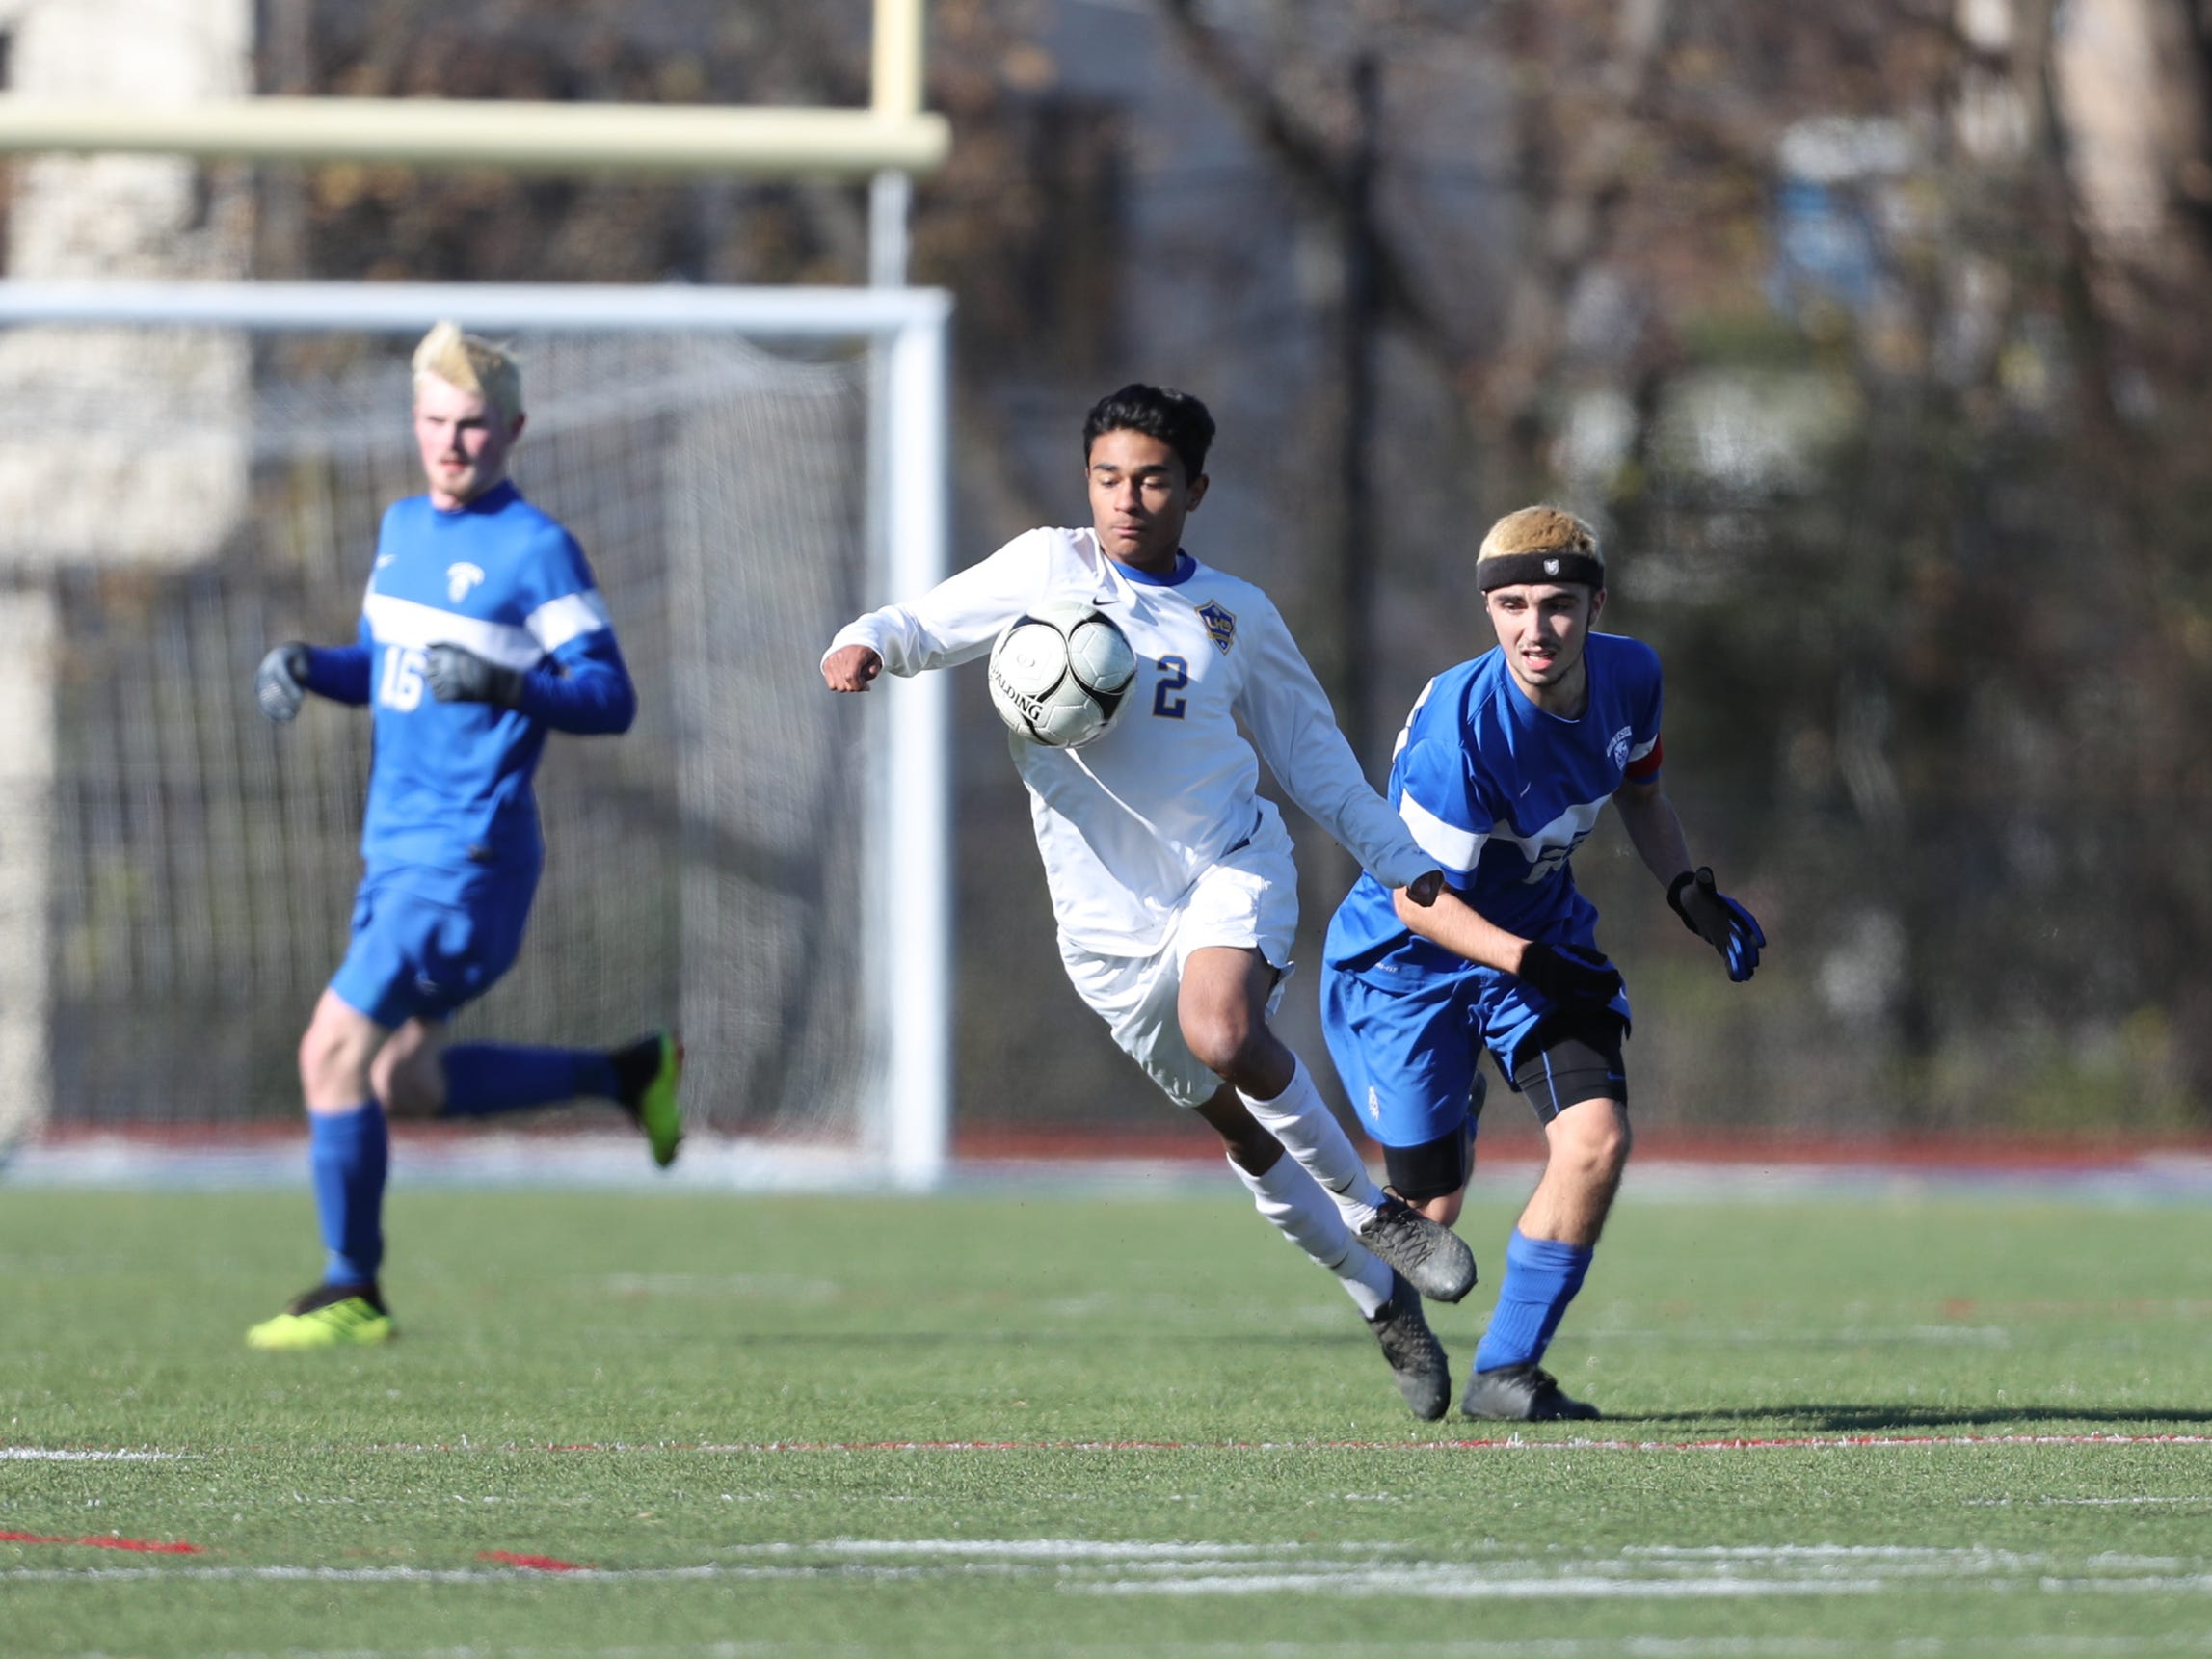 Lansing's Langston Hopkins (2) works the ball near midfield during their 3-0 win over Geneseo in the Class C boys state soccer final at Middletown High School in Middletown on Sunday, November 11, 2018.